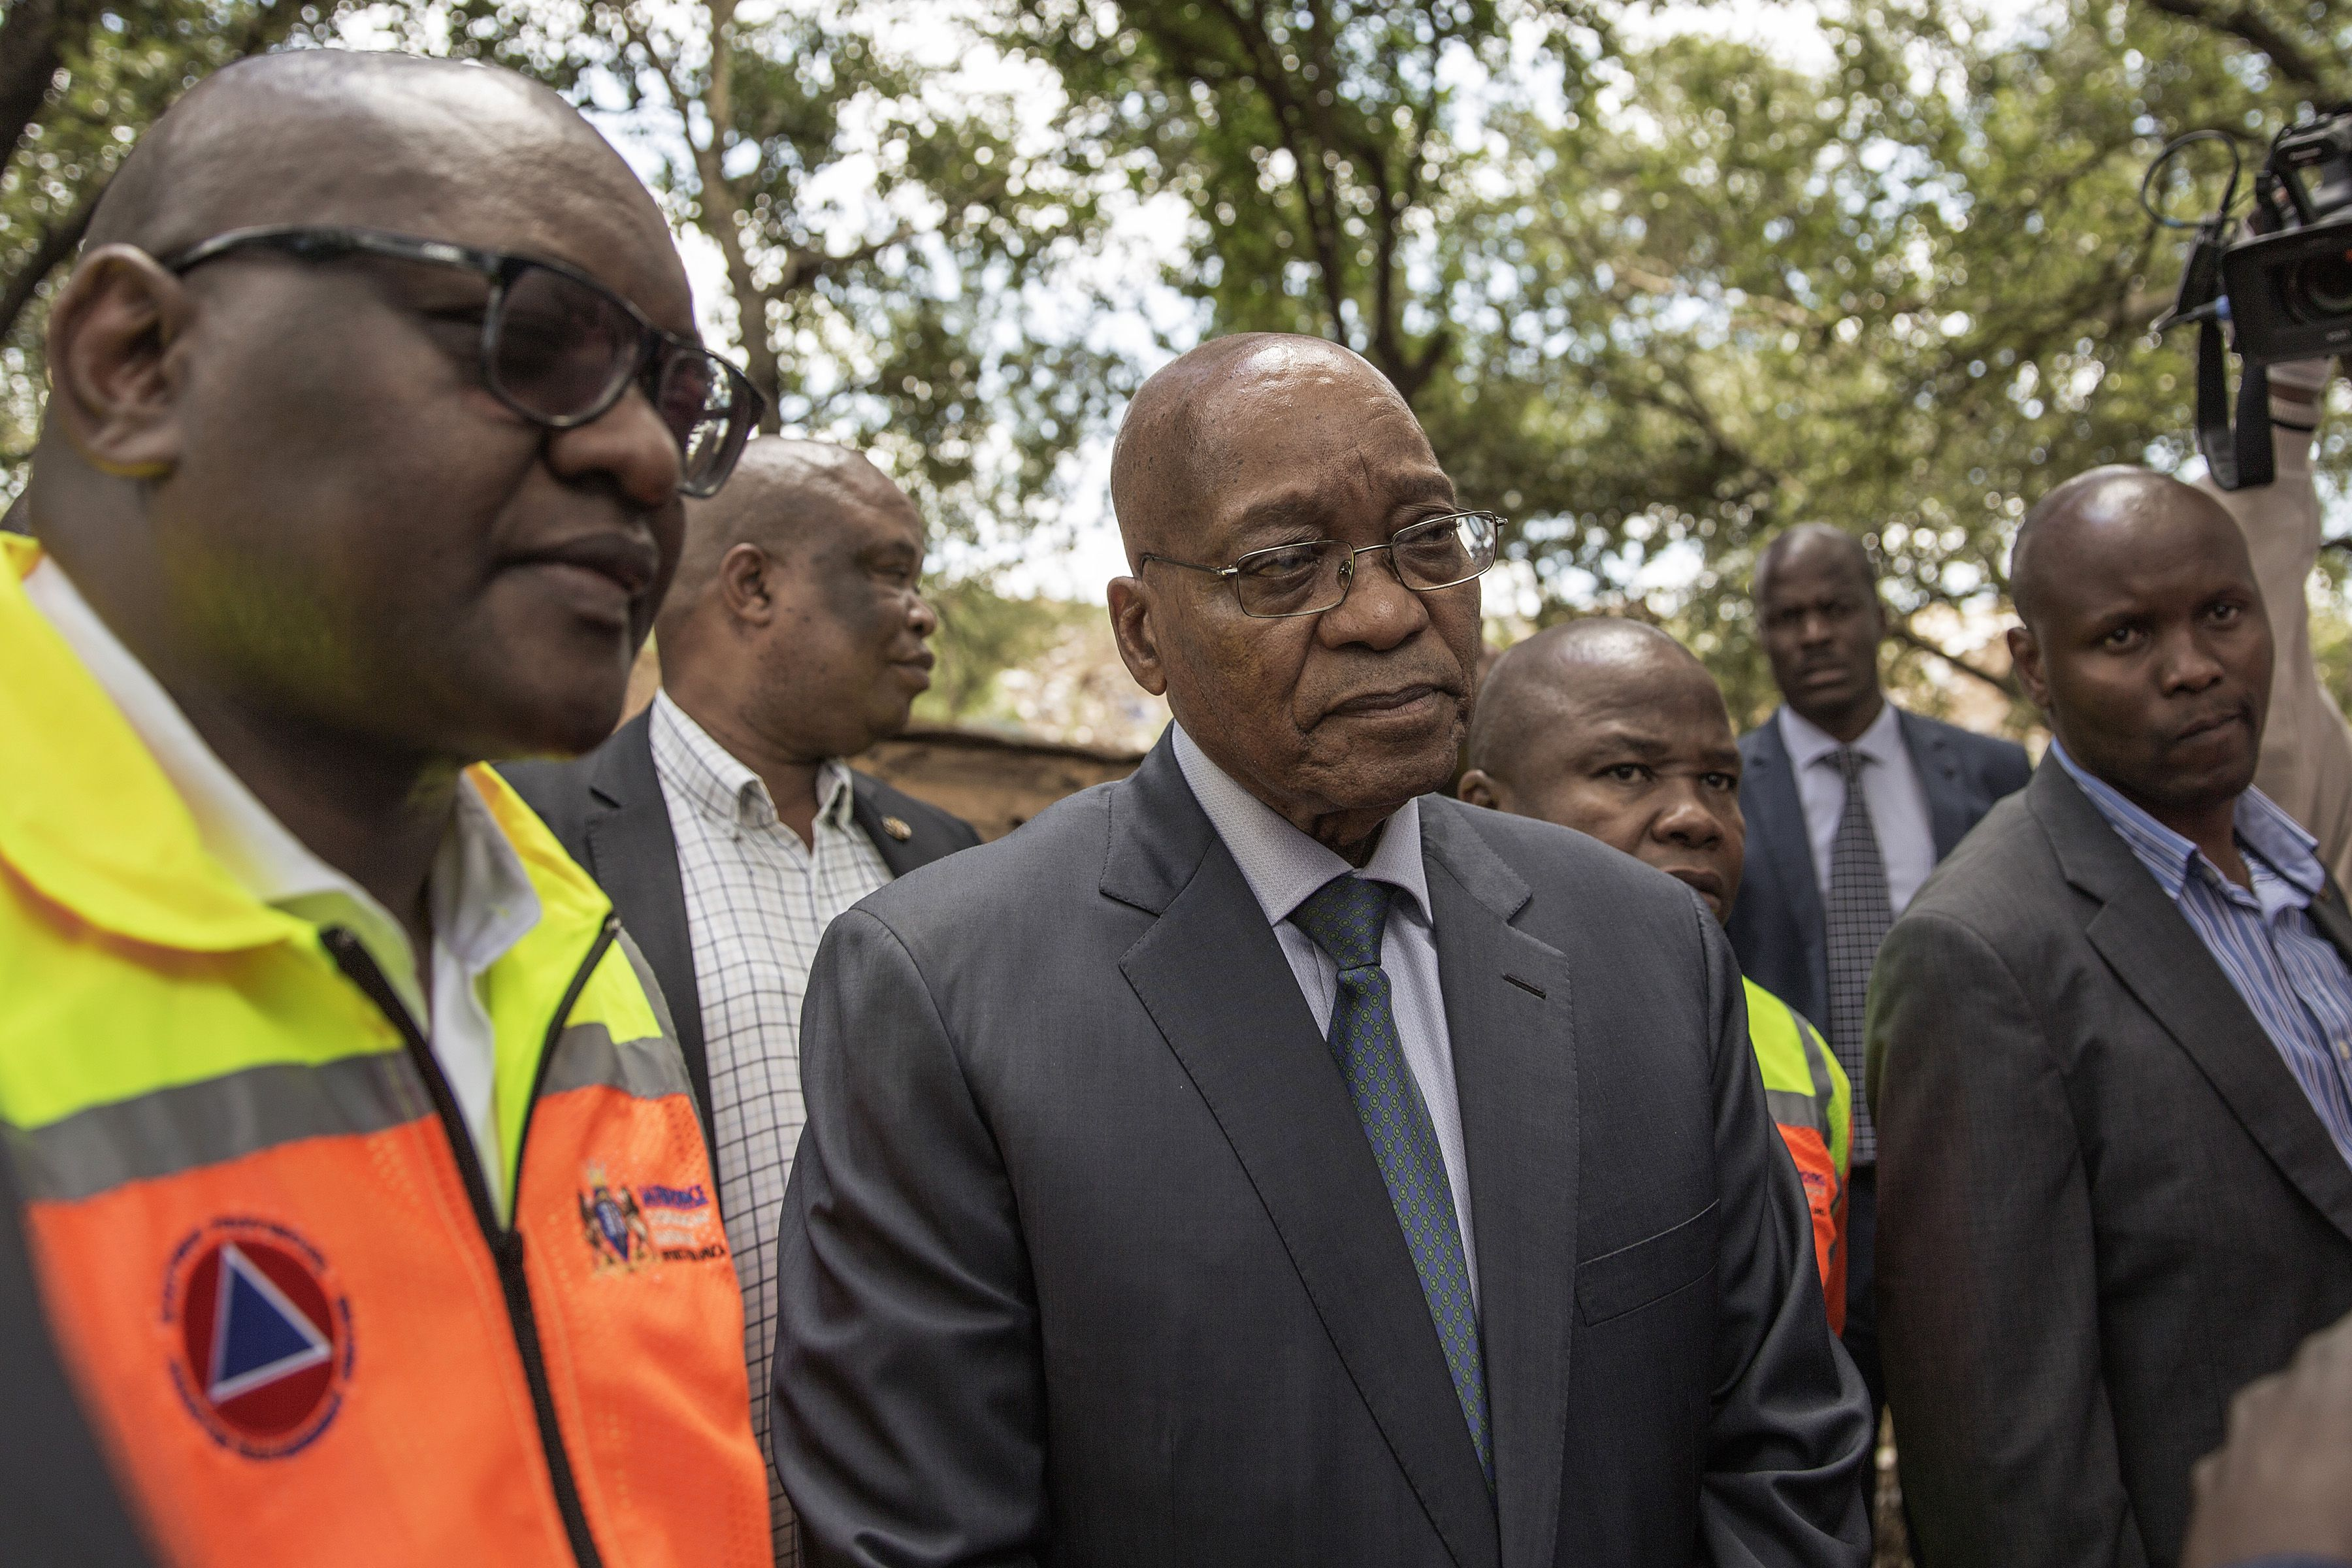 South Africa's opposition files complaint against Zuma over corruption